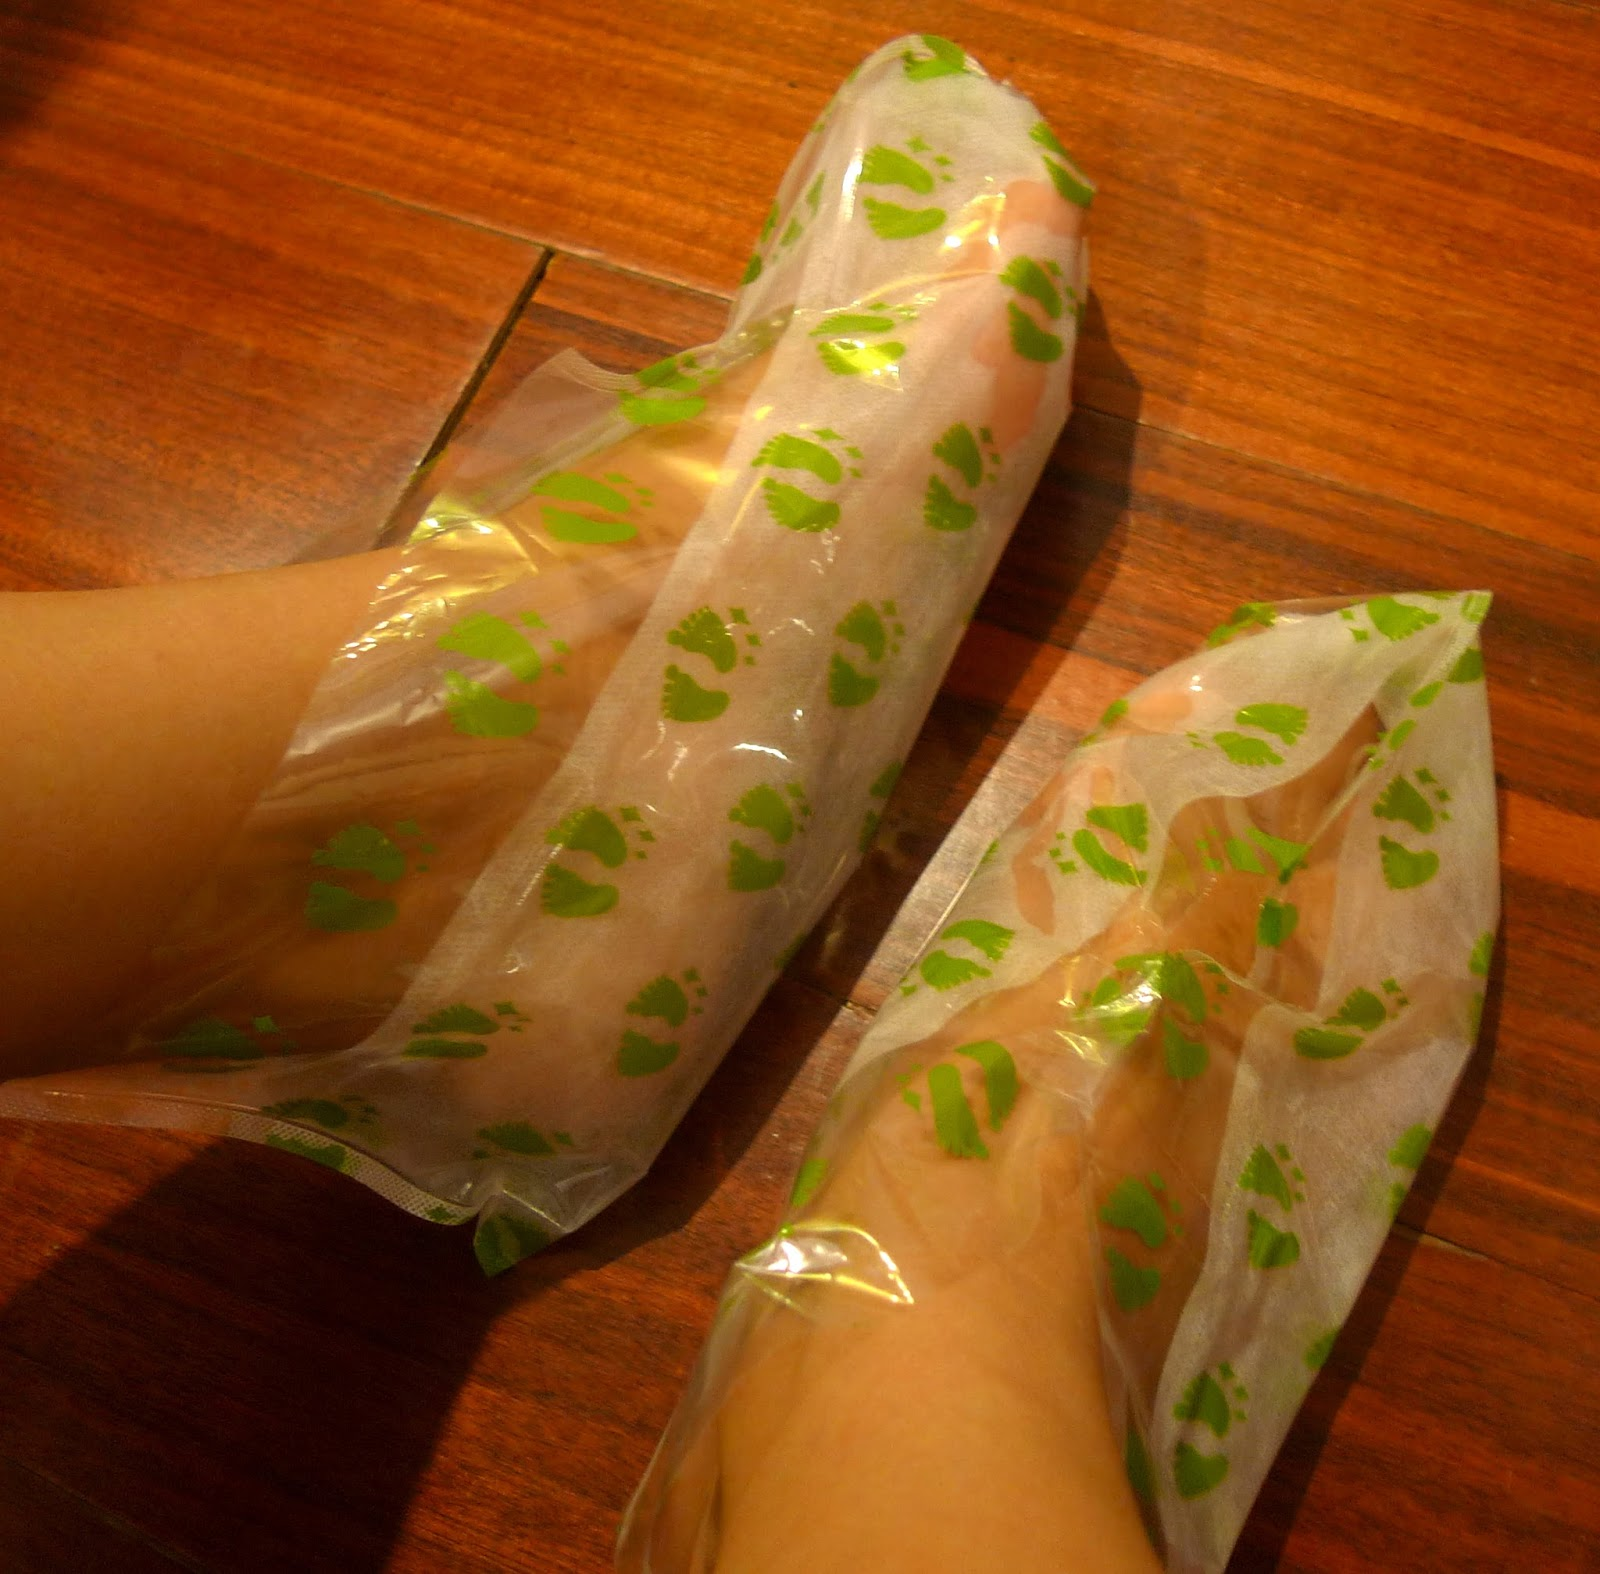 Purederm Exfoliating Foot Mask Review The Beauty Junkee